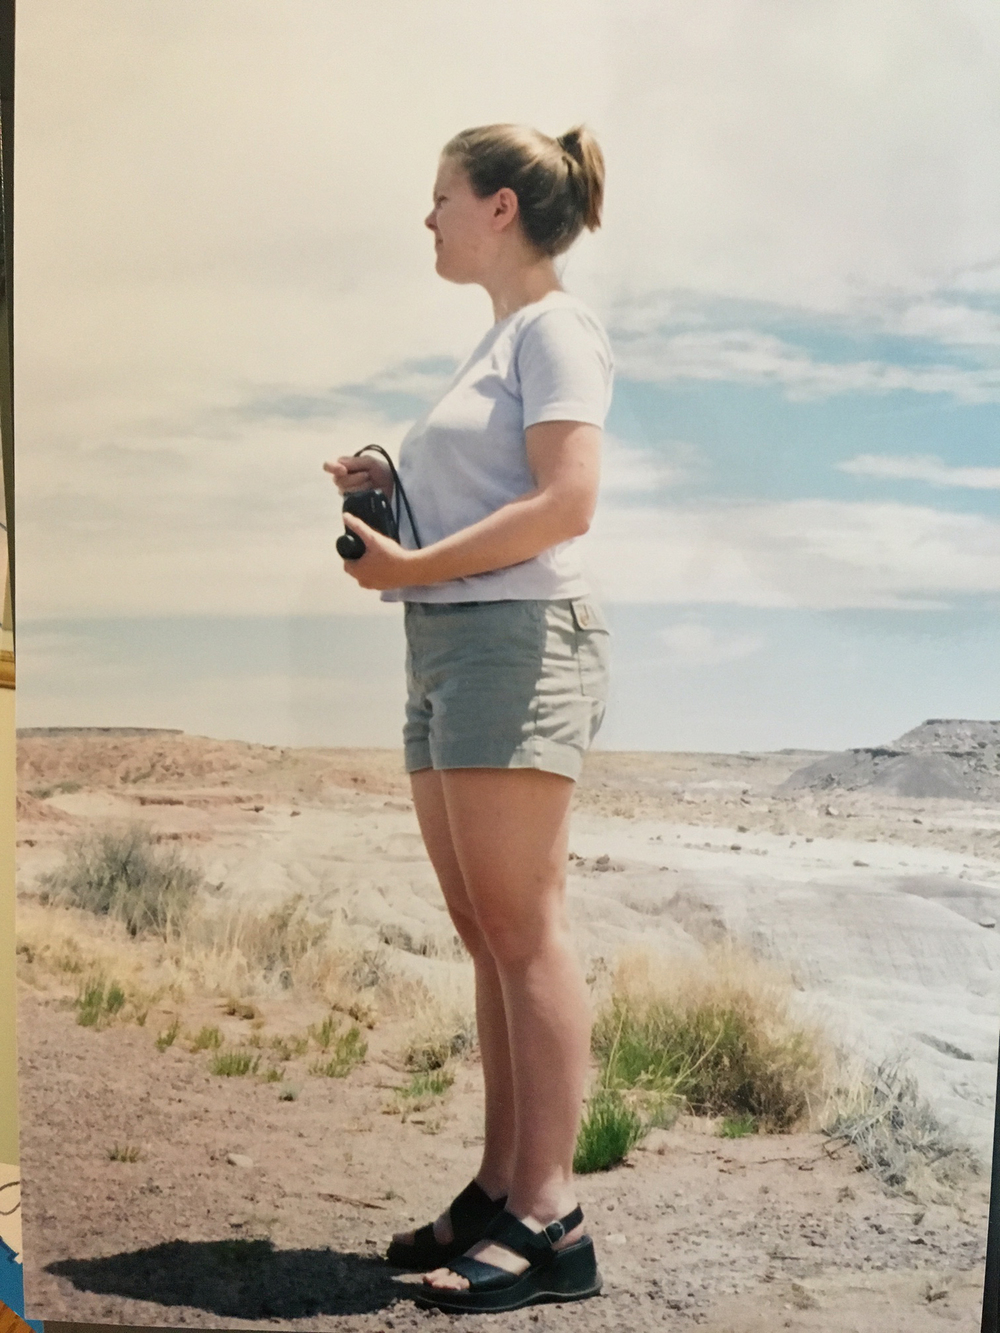 Melissa seeing the Painted Desert for the first time. (CA: ~ 1997 or 1998)